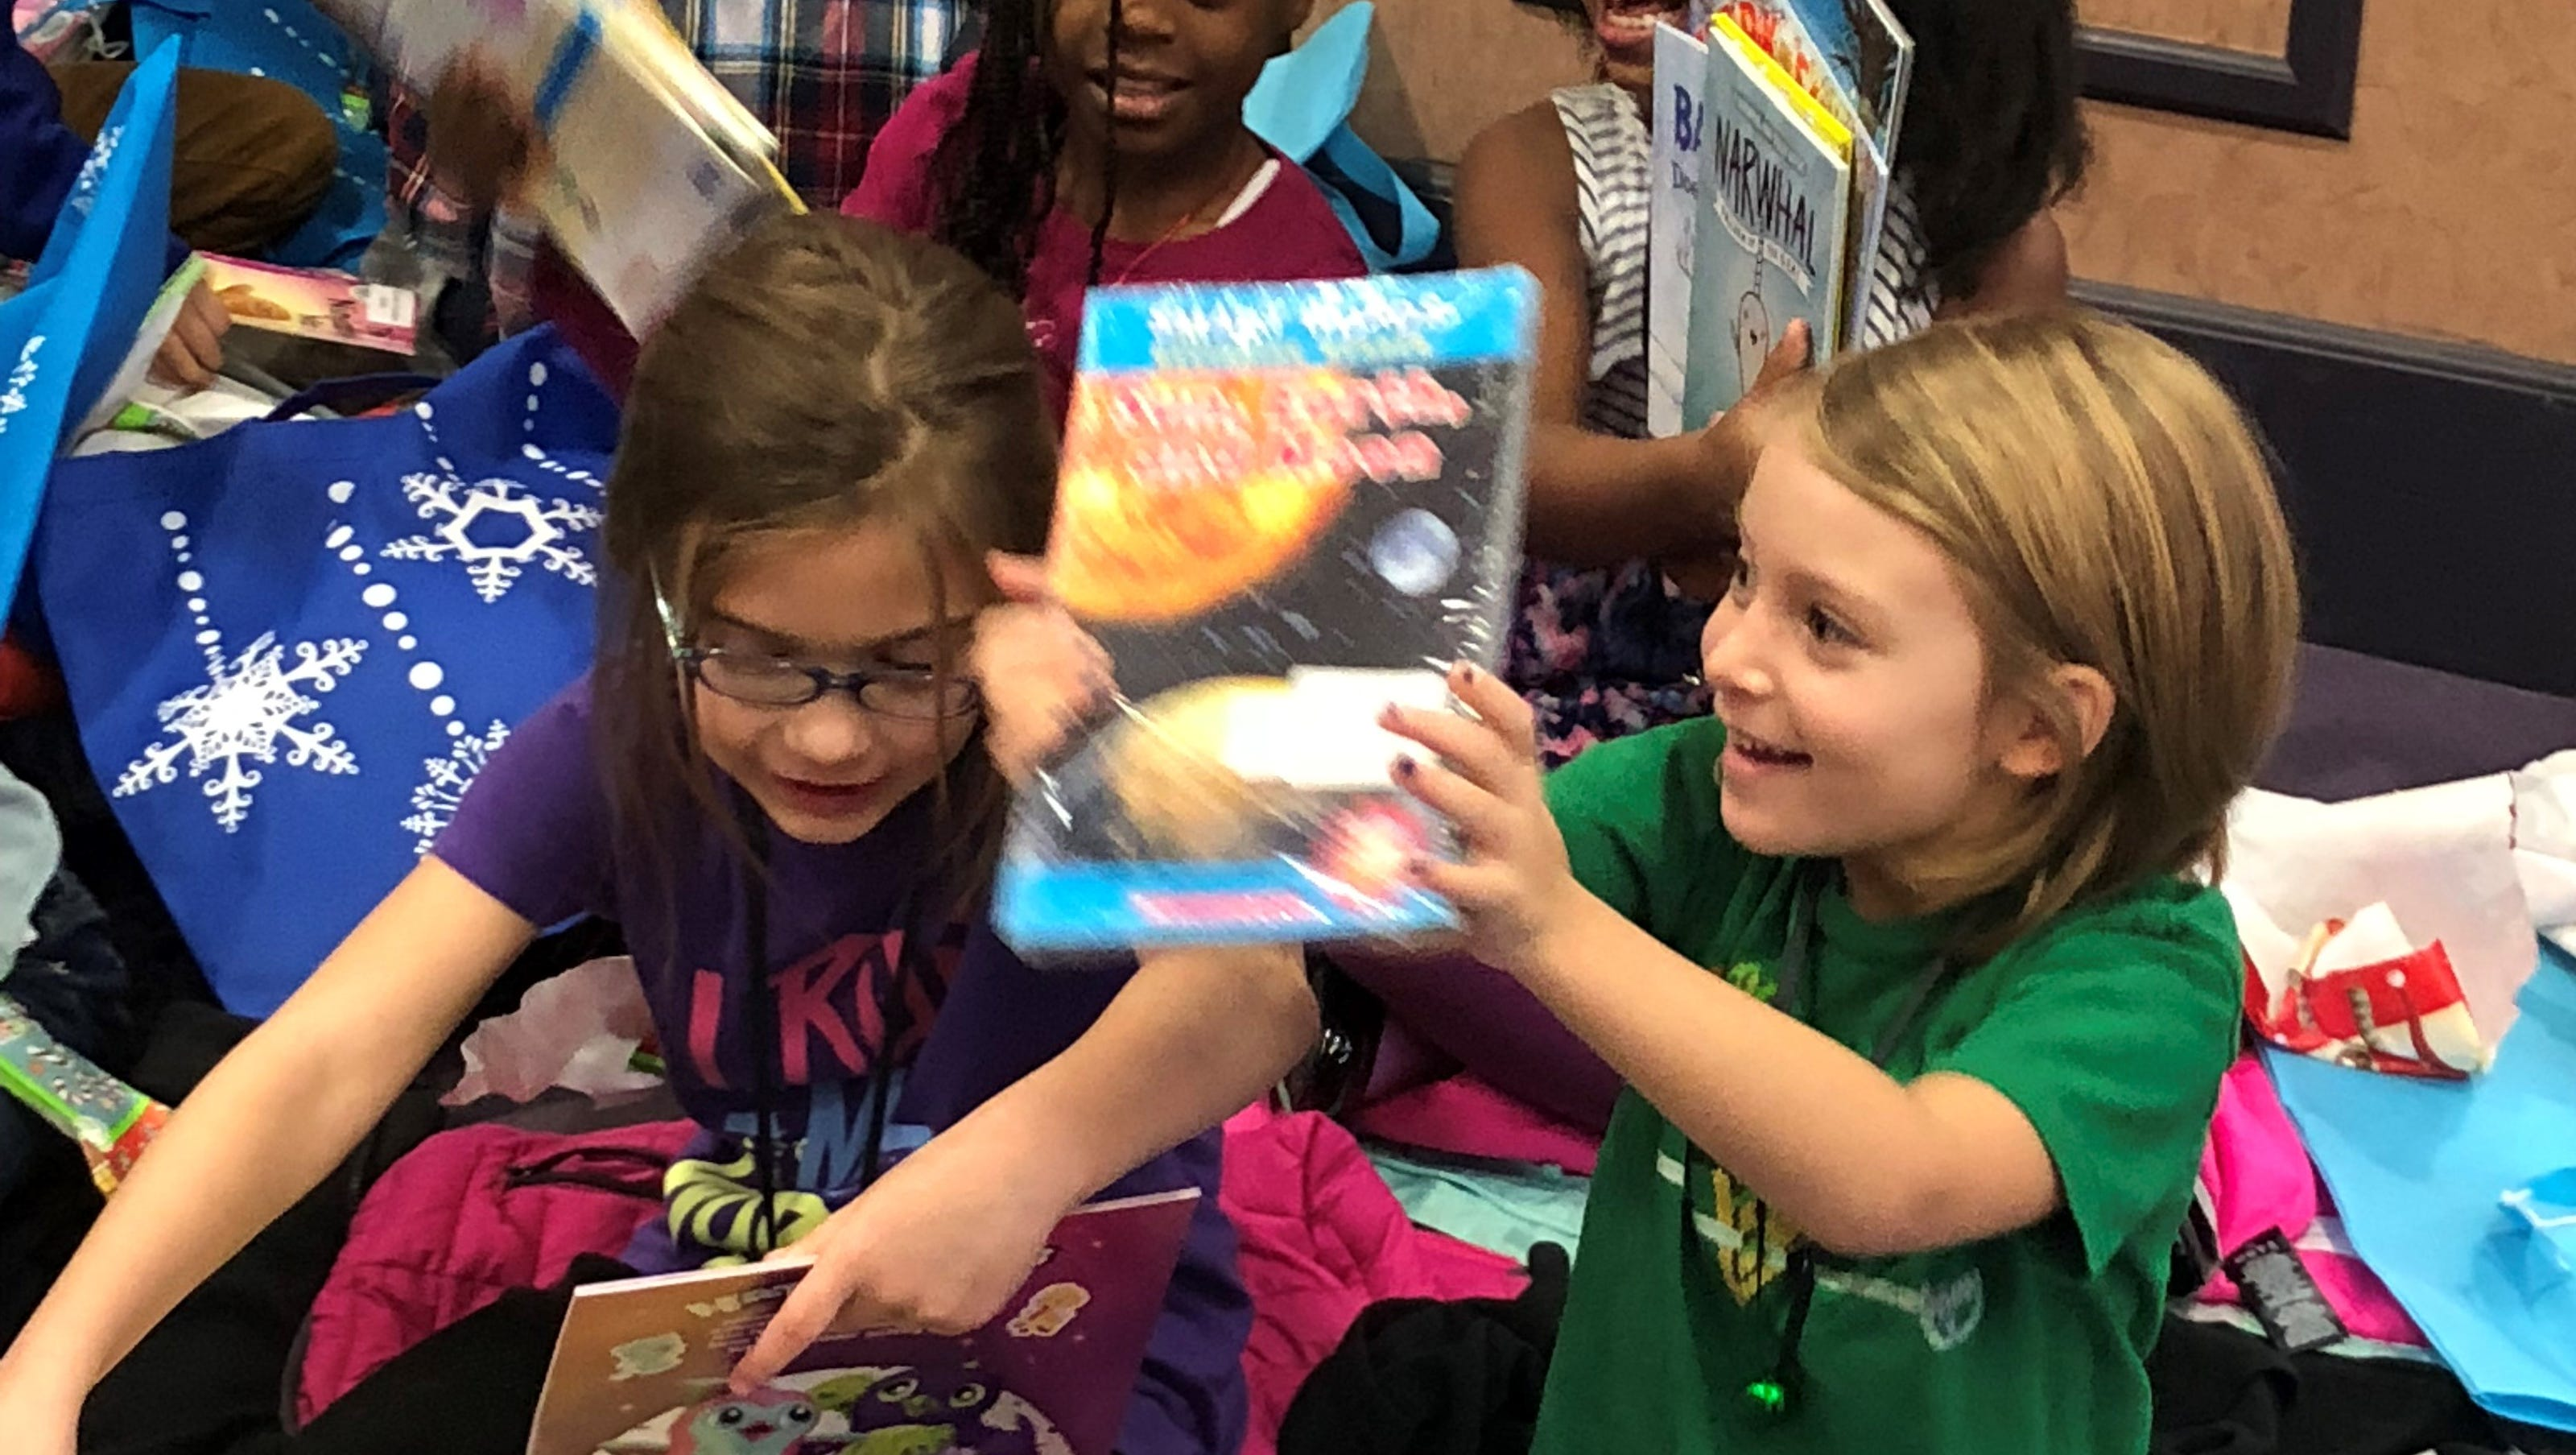 Bowers Launches Second Business To Put Kids On Path To Literacy